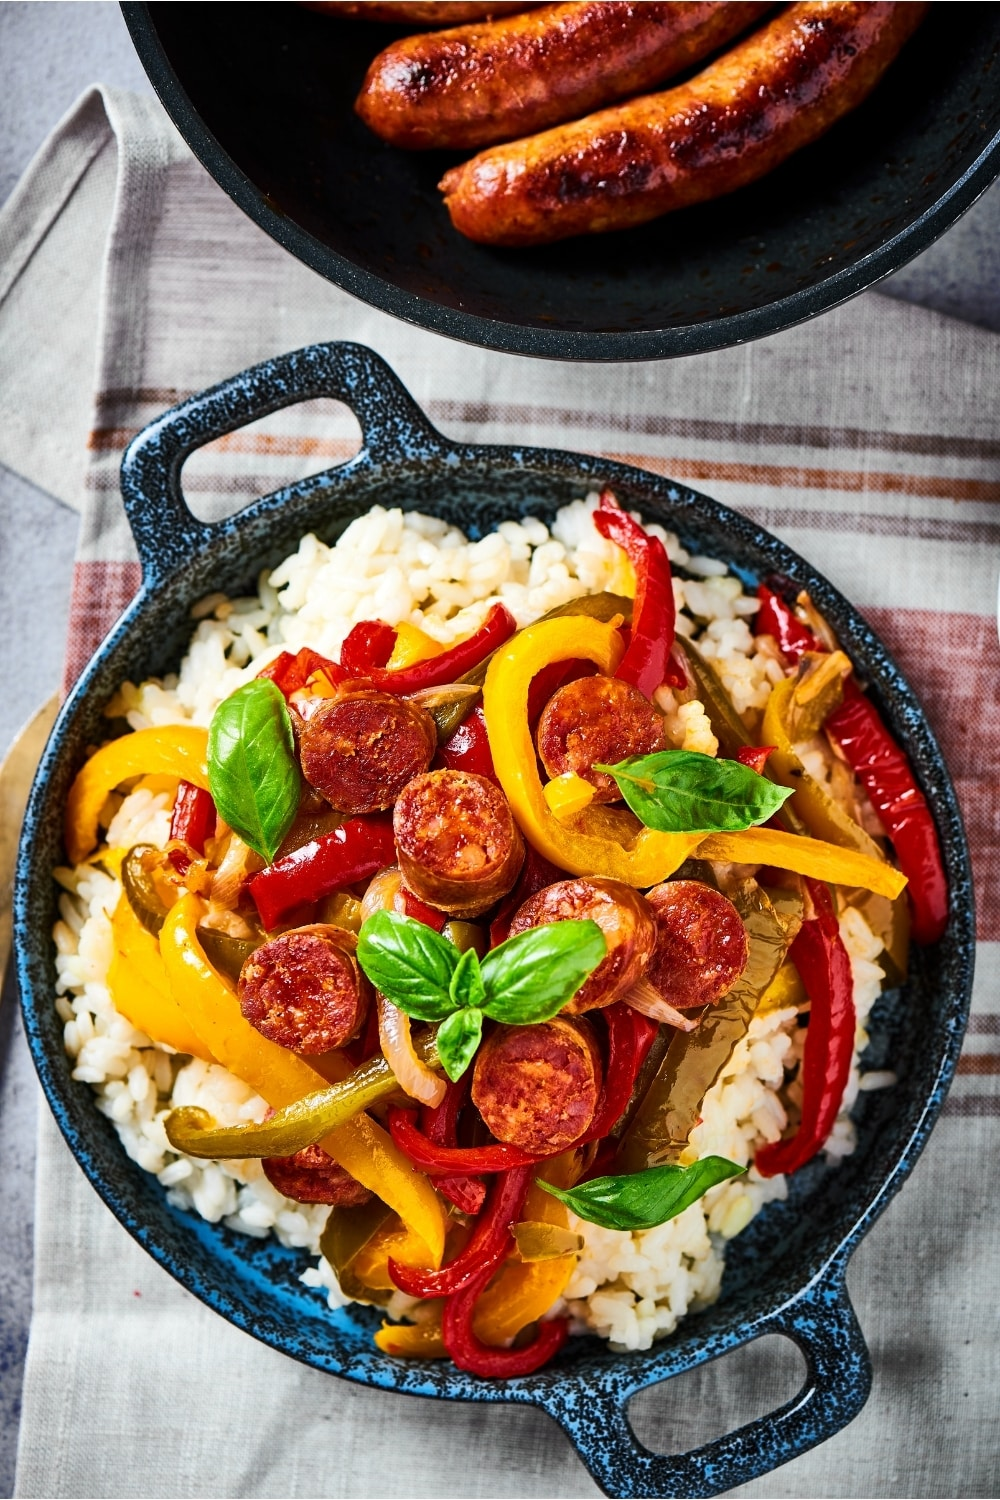 A bowl with sliced sausage, sliced red, yellow, and green peppers, and onions all on top of white rice. The ball is on a plaid tablecloth.